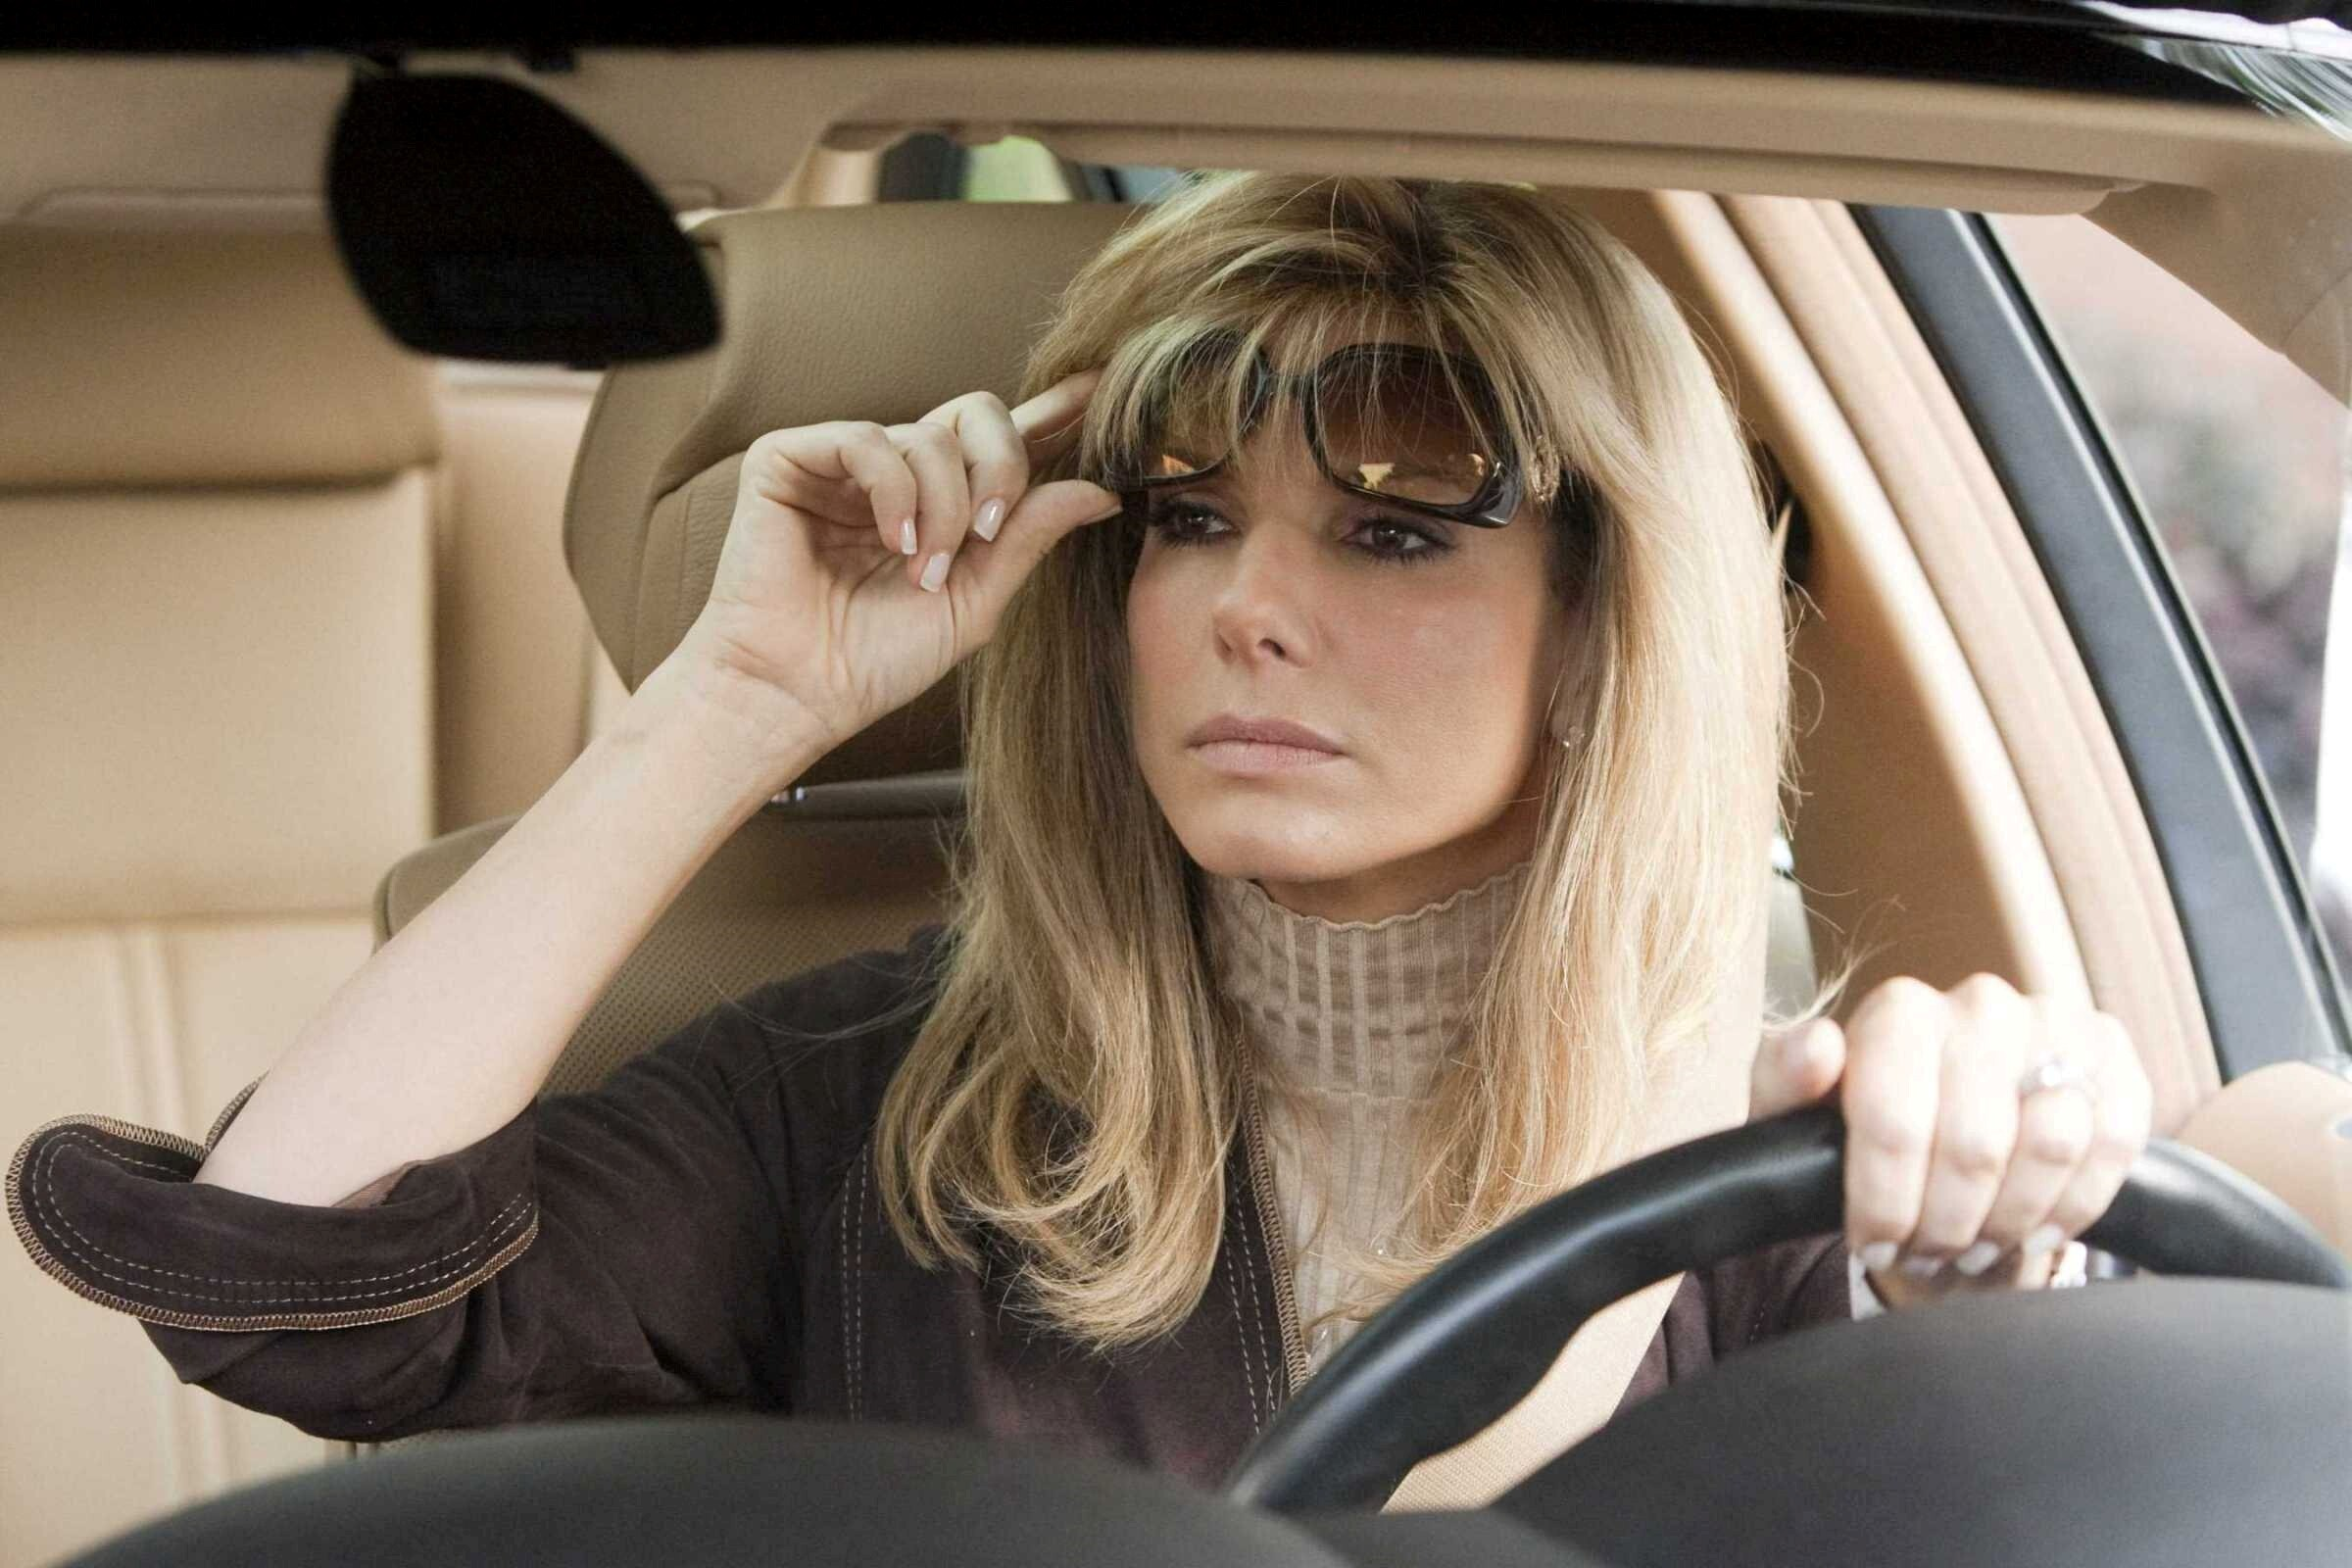 Sandra Bullock in Car | HD Wallpapers: www.hdnicewallpapers.com/Wallpaper-Download/Sandra-Bullock/Sandra...